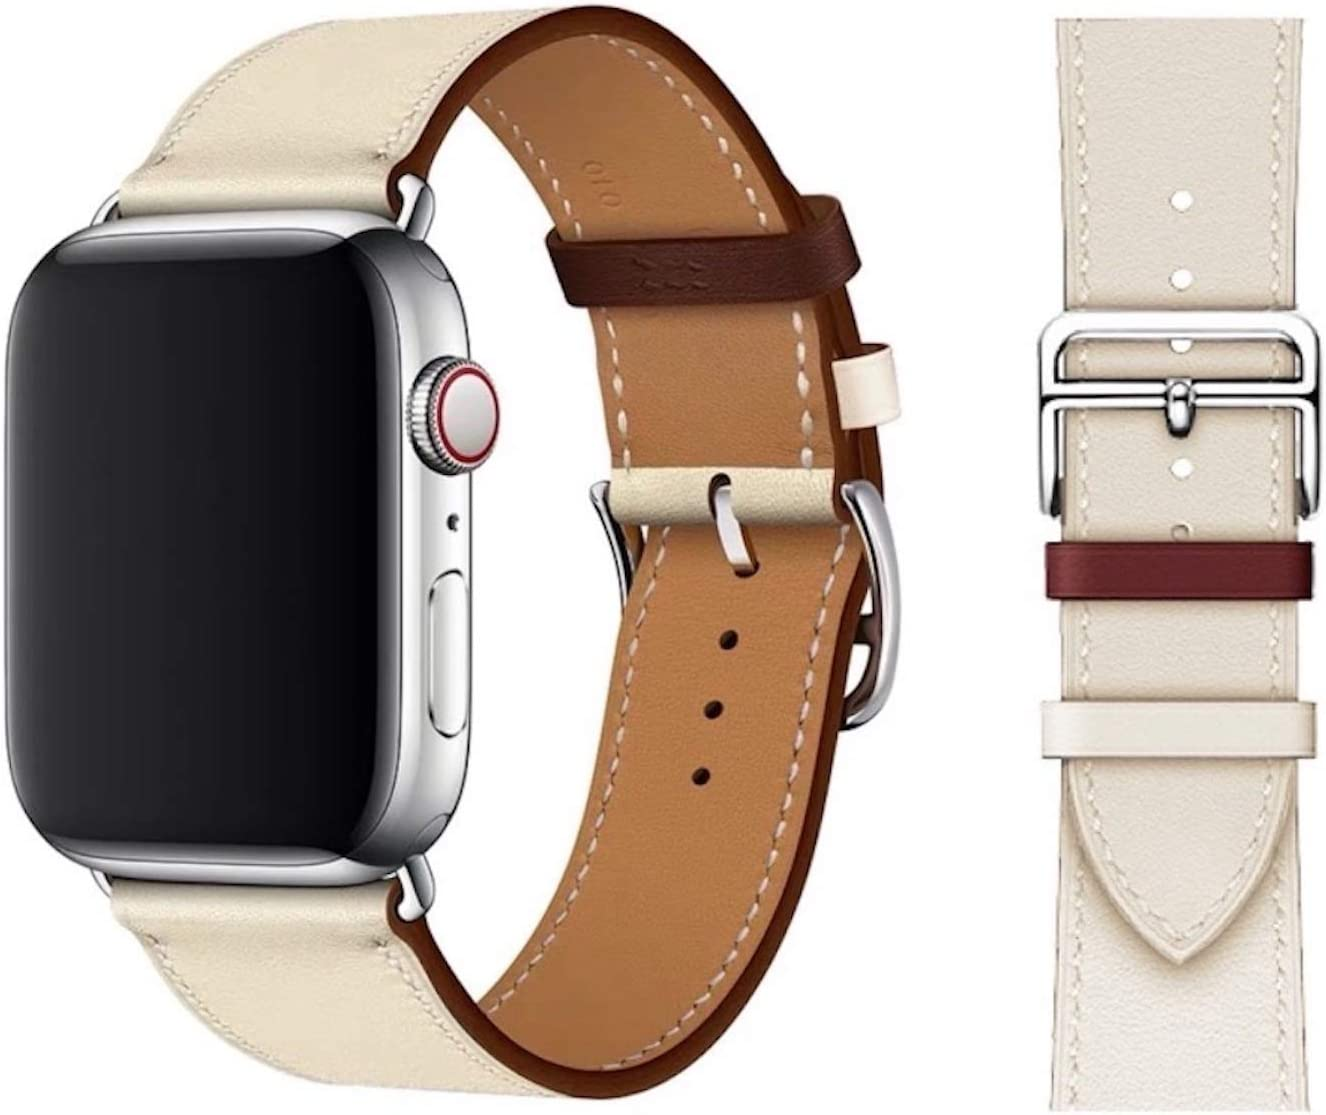 NDegreez French Barenia Calfskin Leather Band Compatible with Apple Watch 38mm 40mm, Replacement Bands for Apple iWatch Series 1/2/3/4/5/6/SE for Men and Women (Craie, 38/40mm)